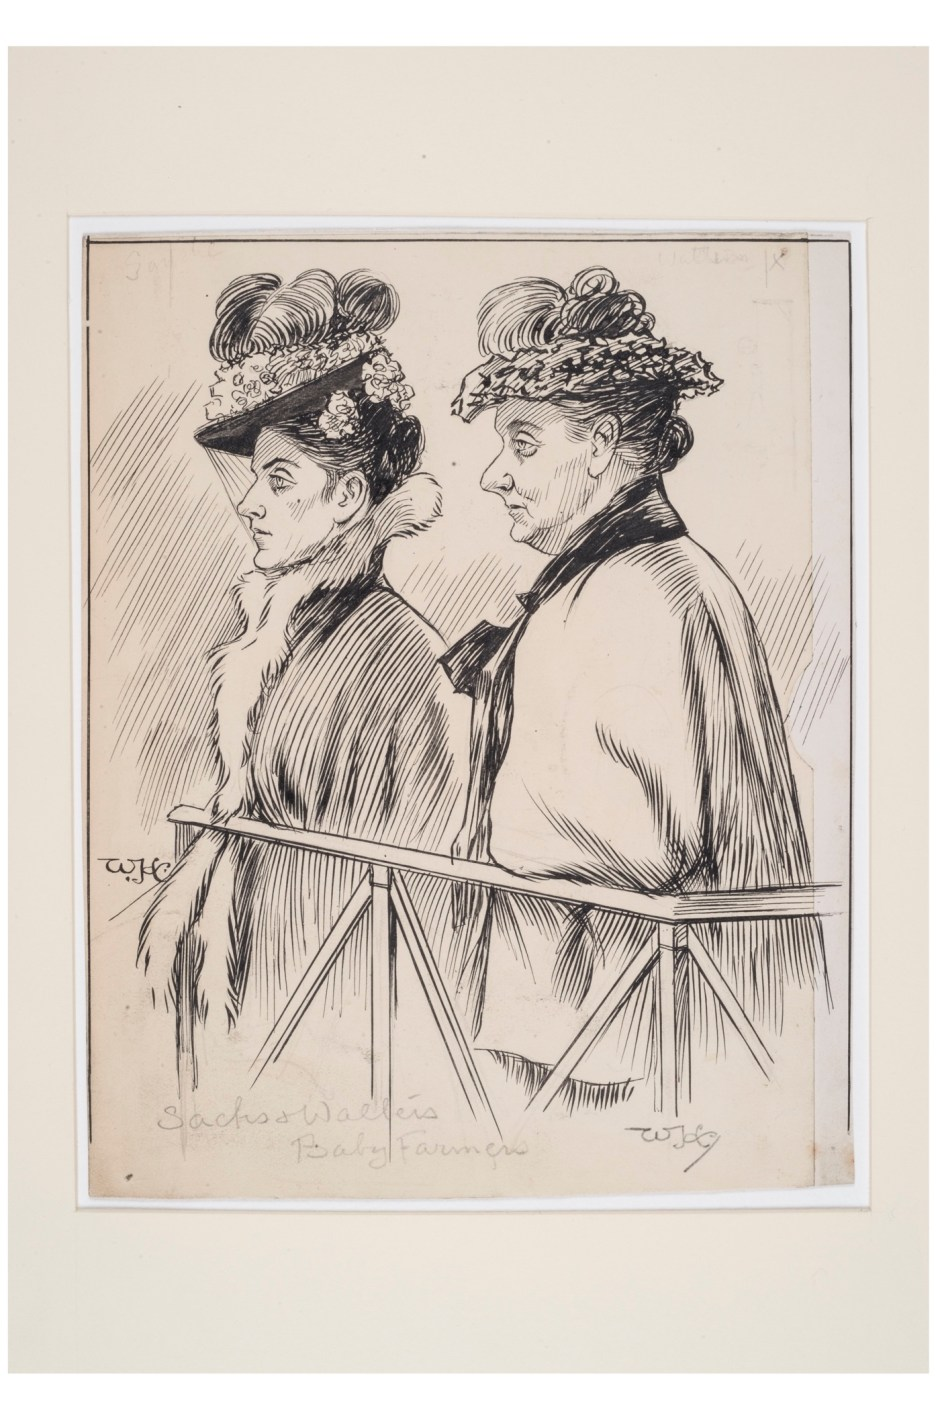 1a3. William Hartley Courtroom illustration of Amelia Sachs and Annie Walters on trial for baby farming, 1903 ∏ Museum of London